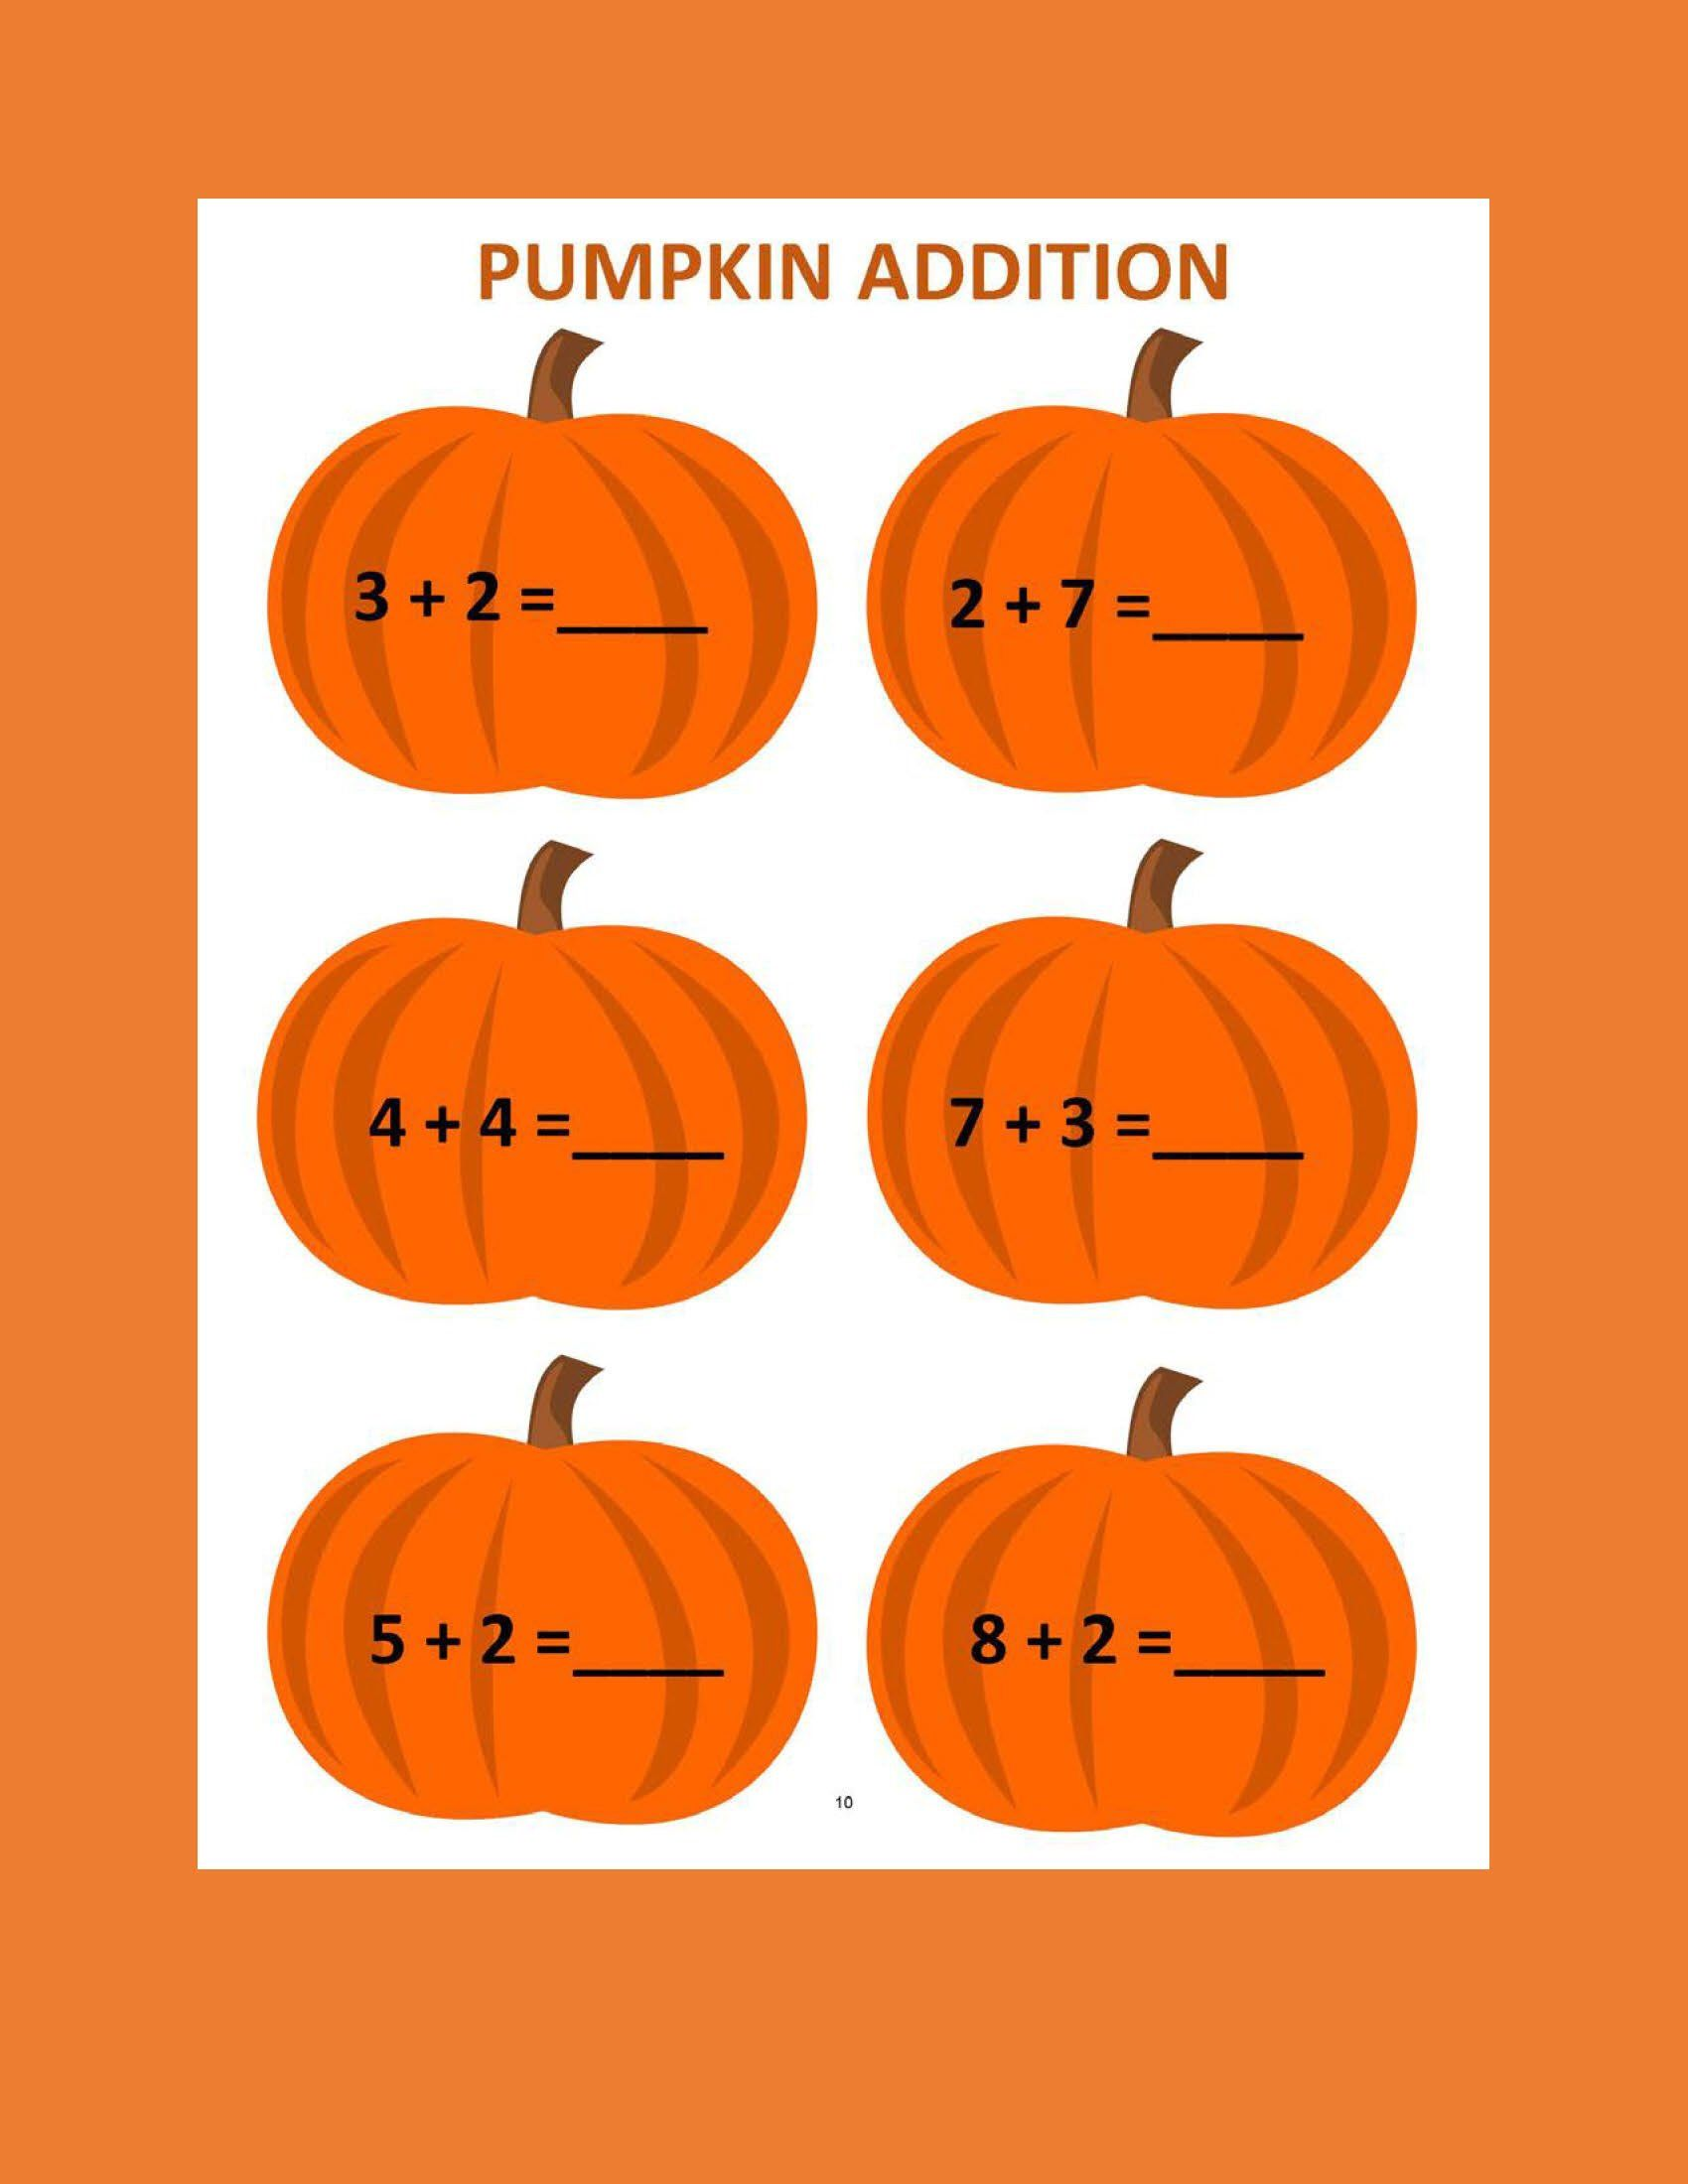 Pumpkin Addition A 12 Worksheets Preschool